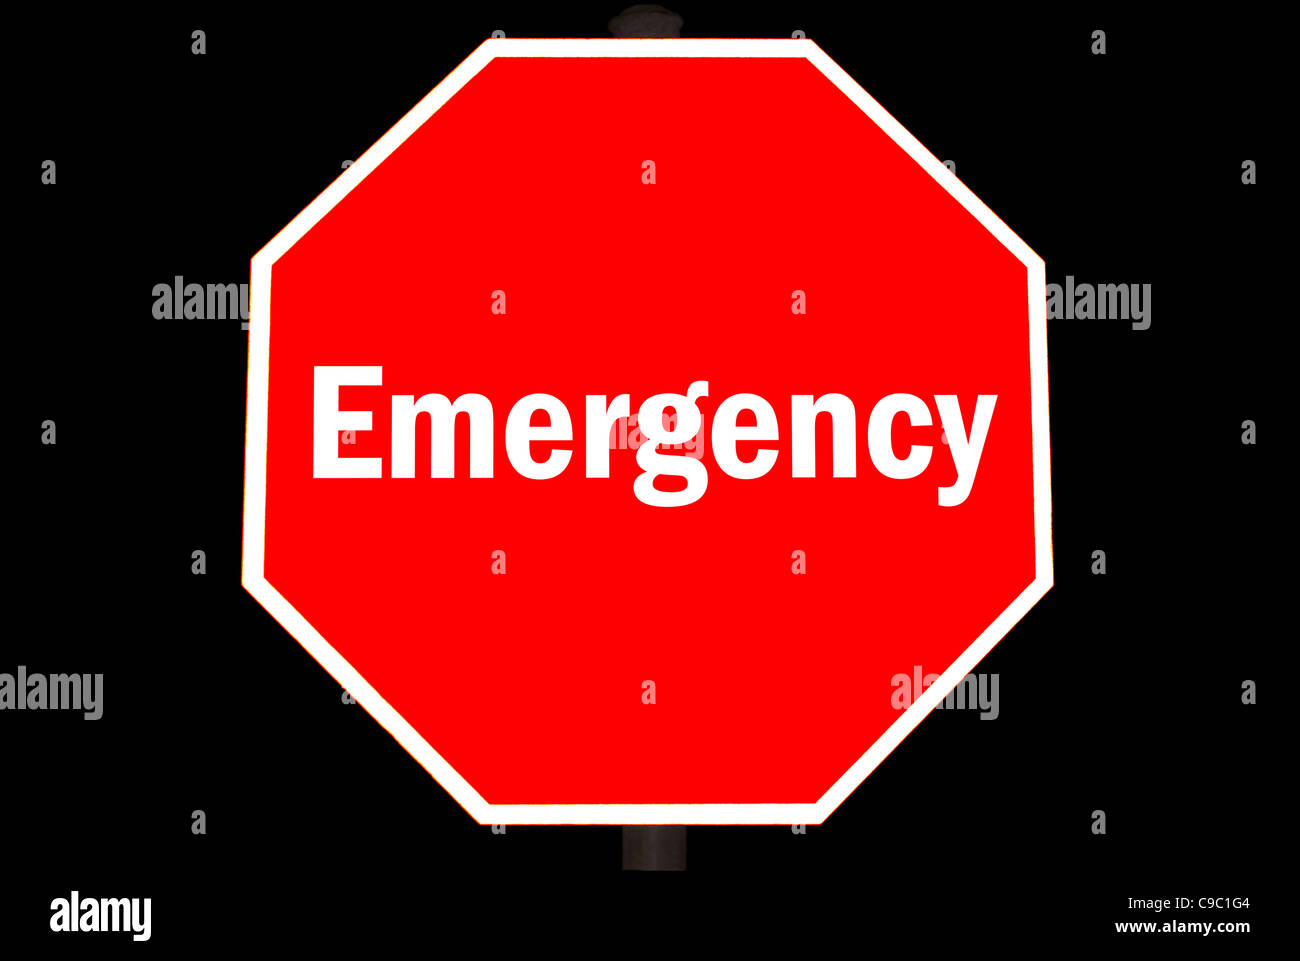 Emergency Concept On A Red Stop Sign - Stock Image